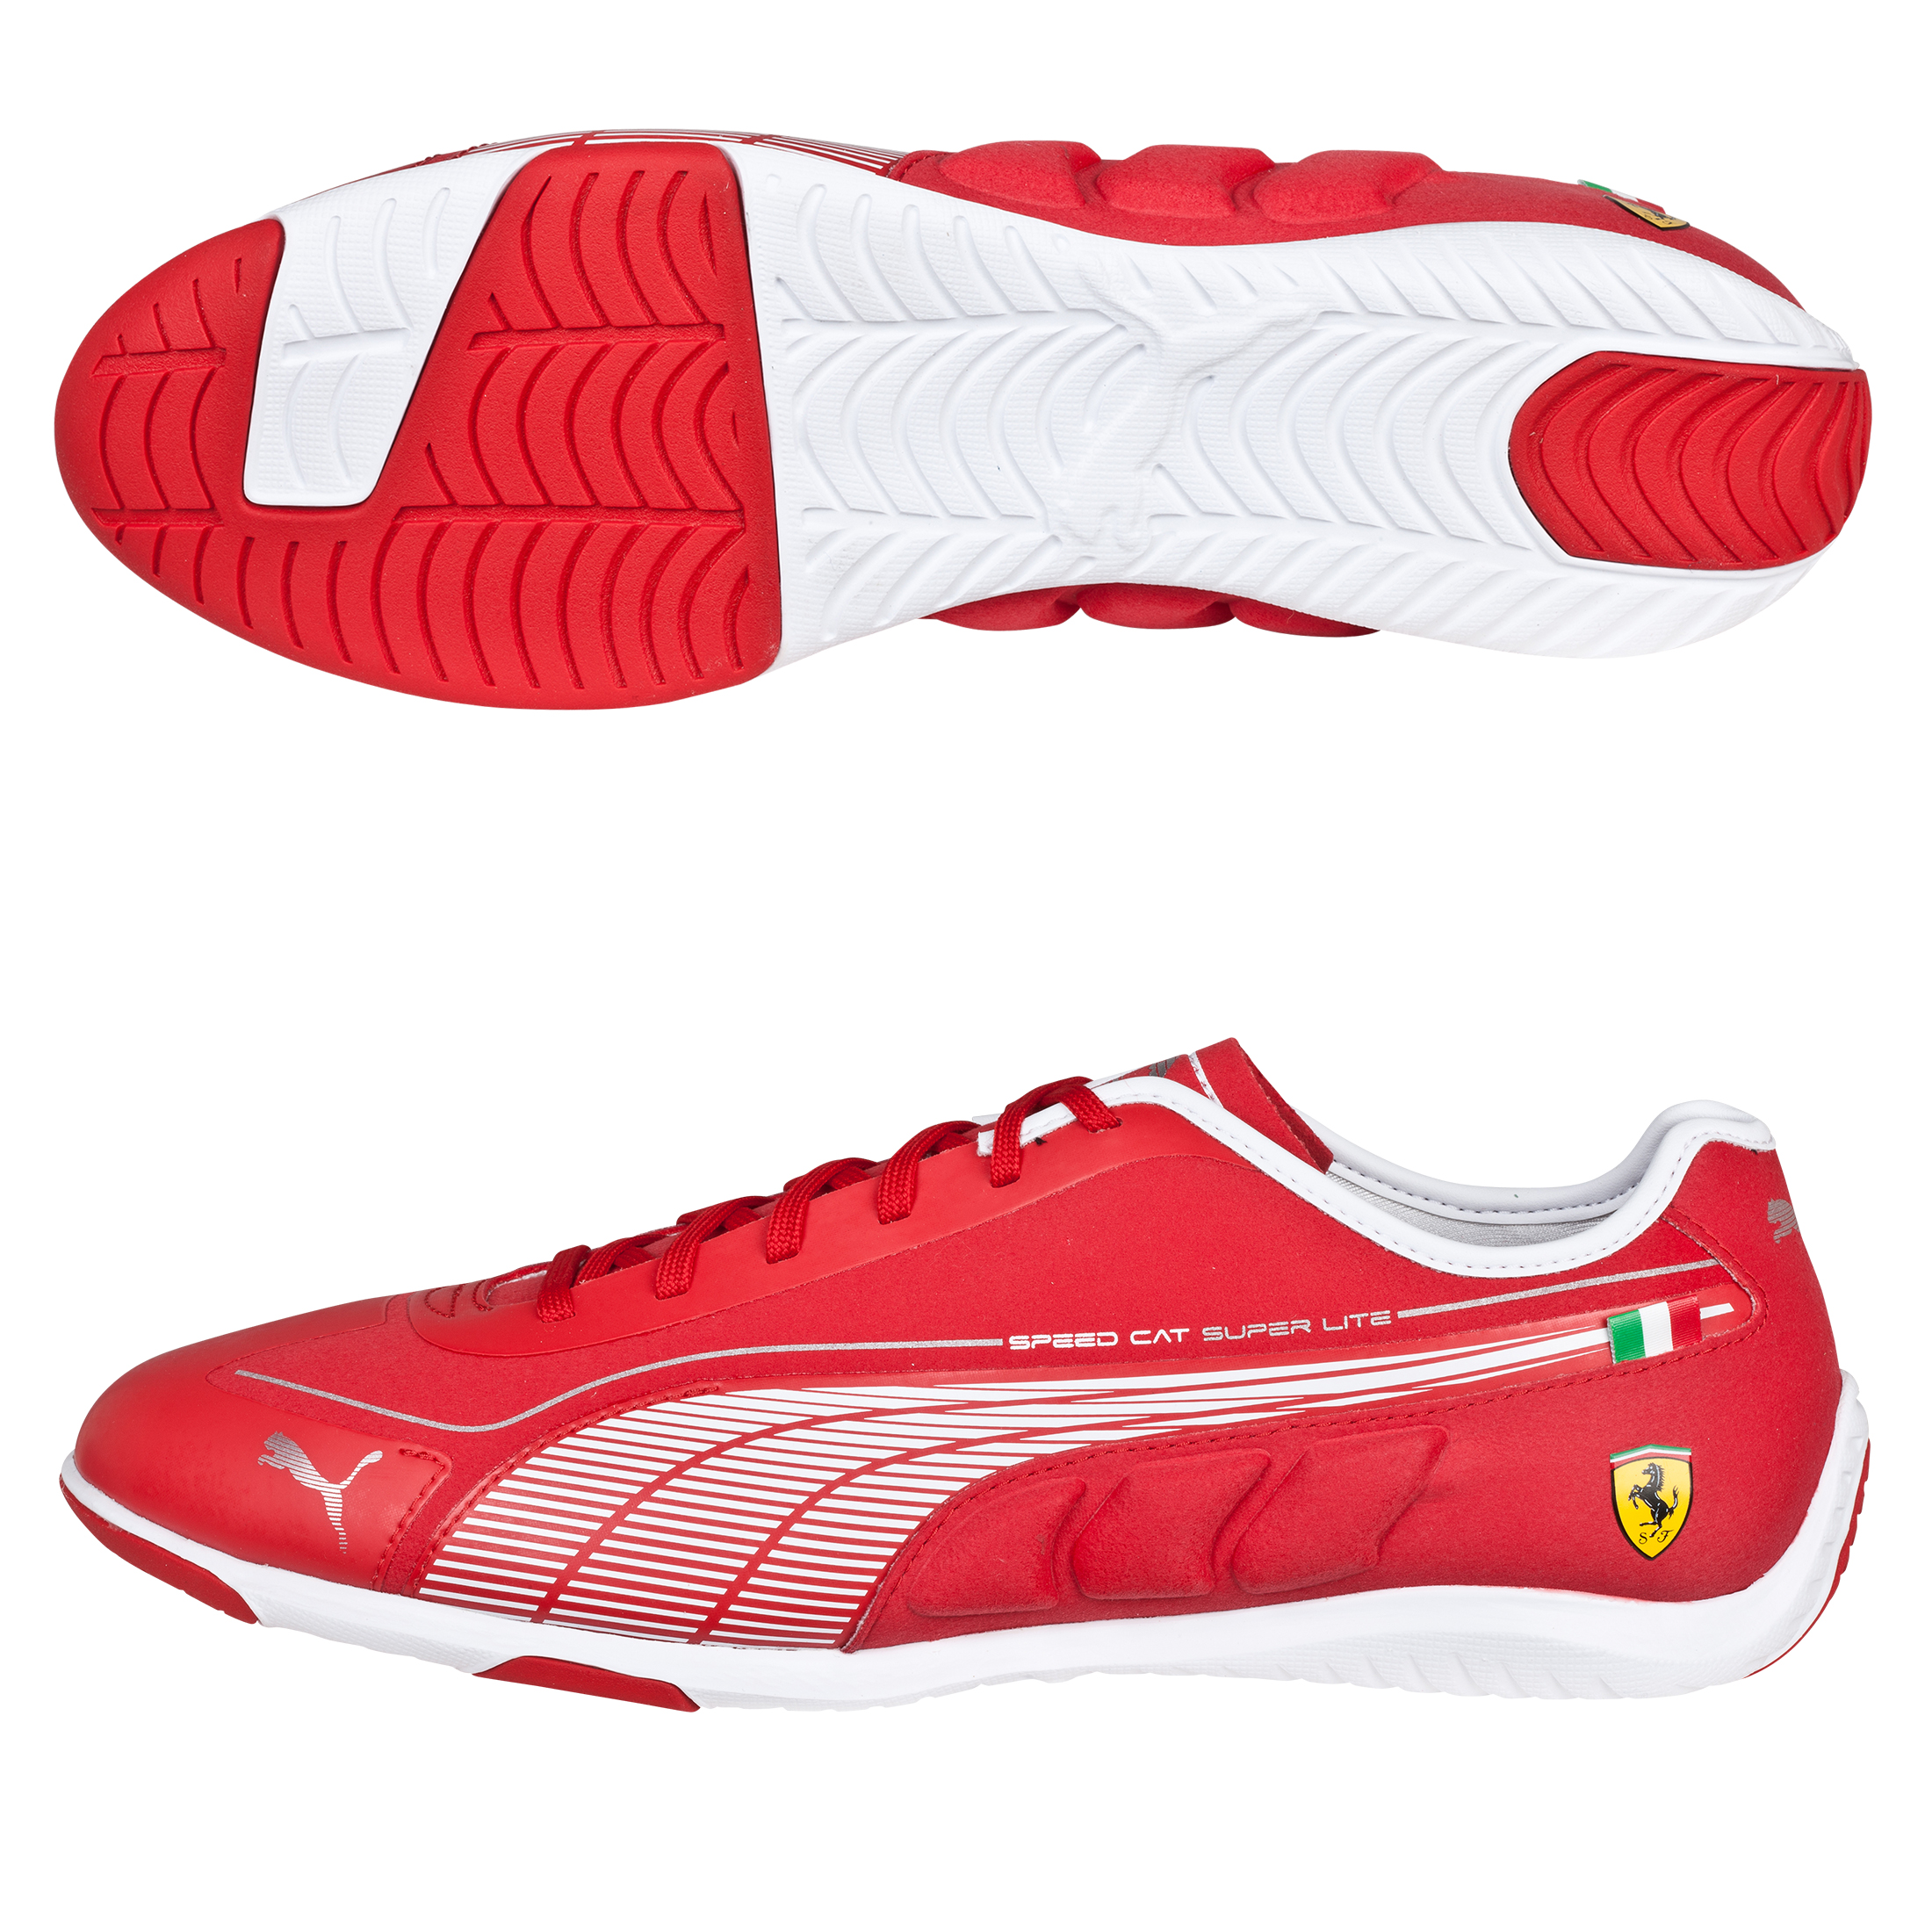 Scuderia Ferrari Speed Cat Super Lite Low - Rosso Corsa/White